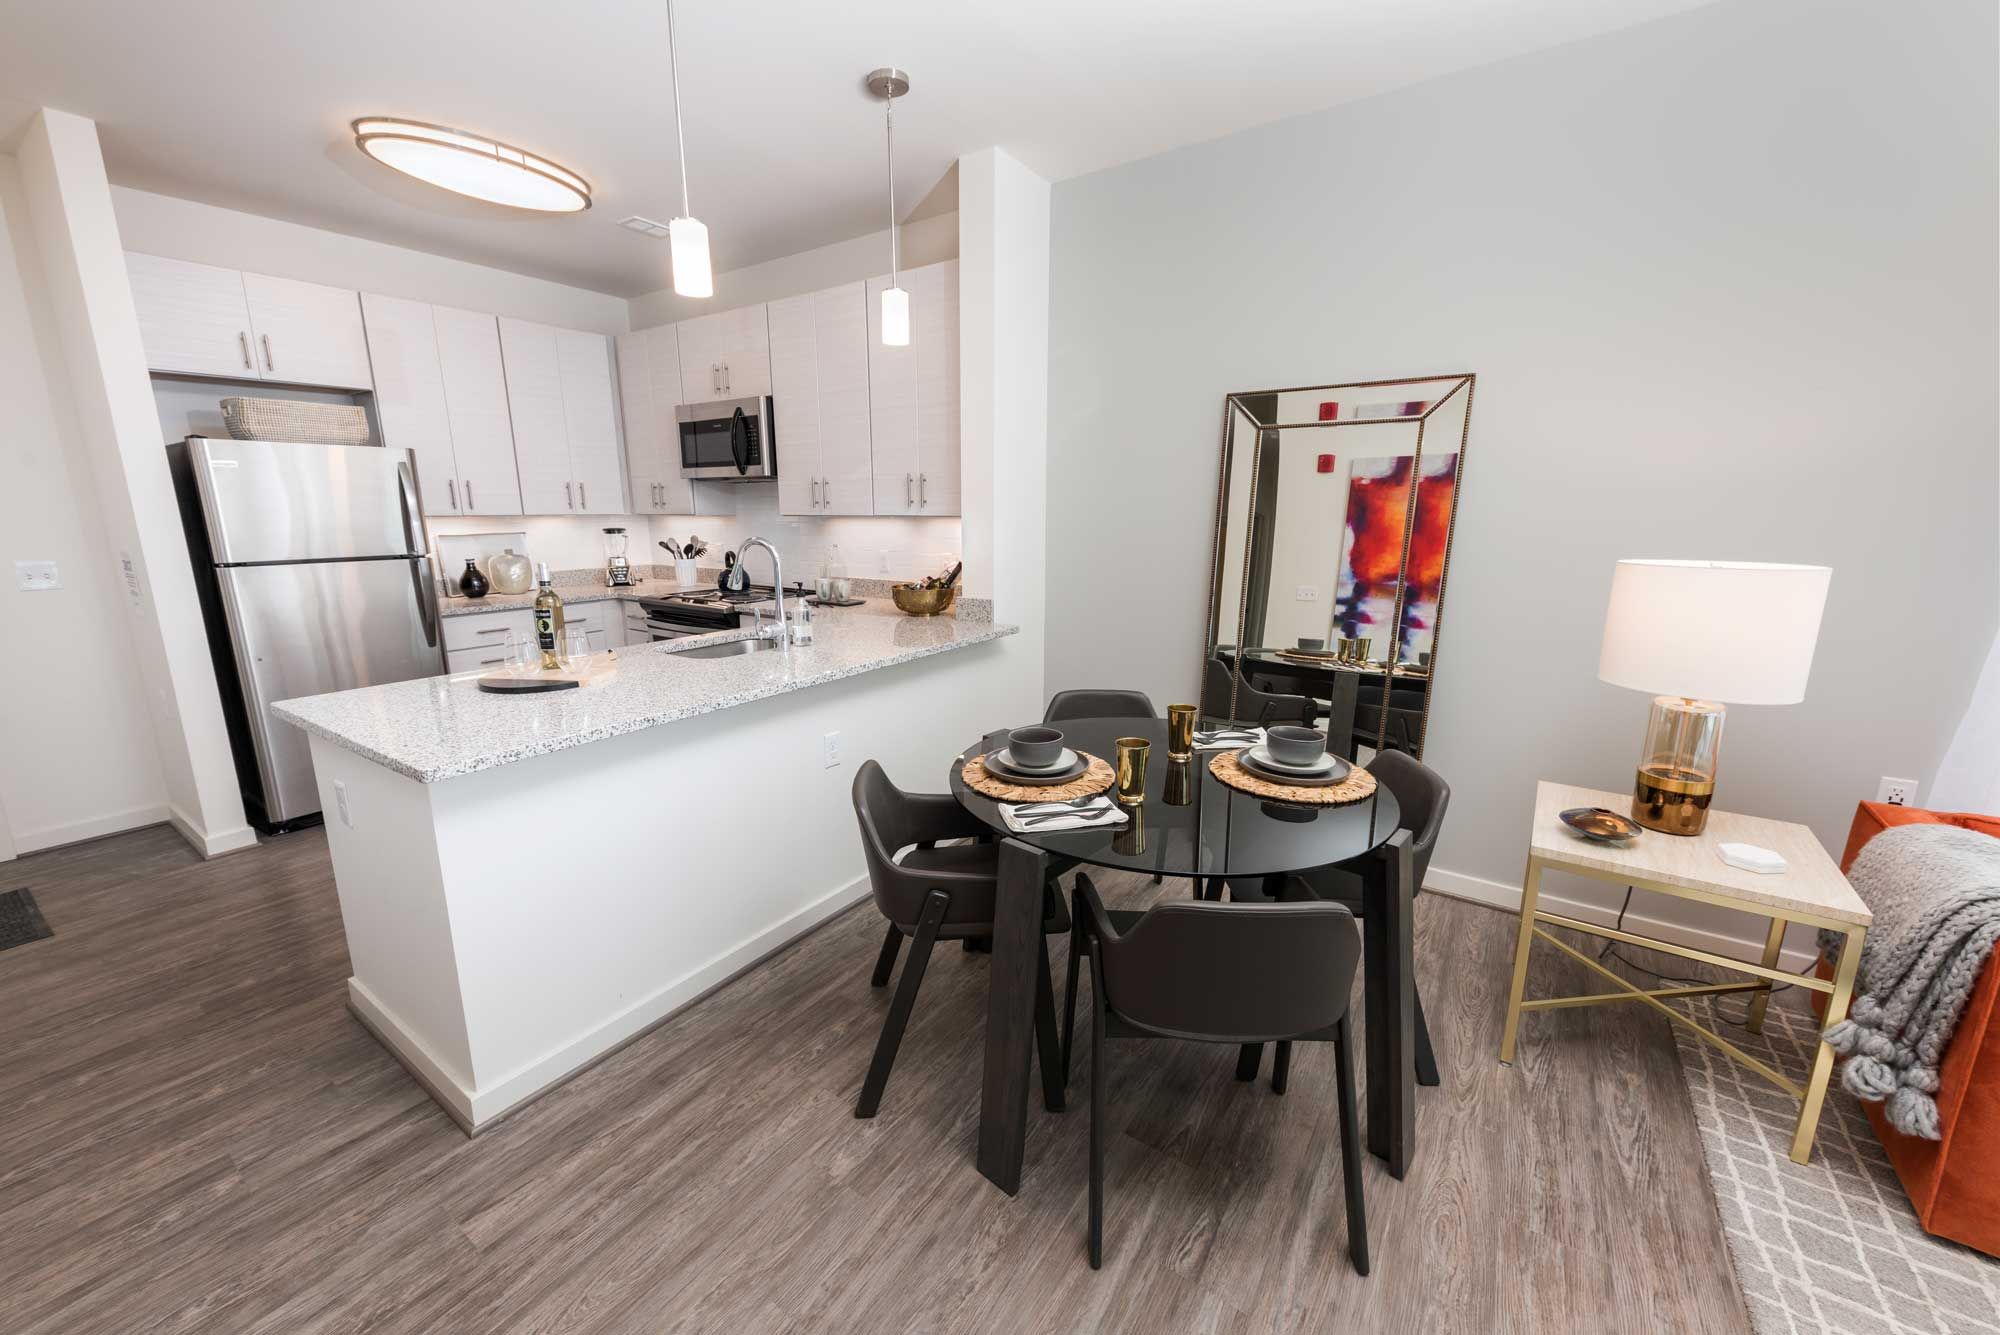 Studio 3807 Kitchen And Dining Room